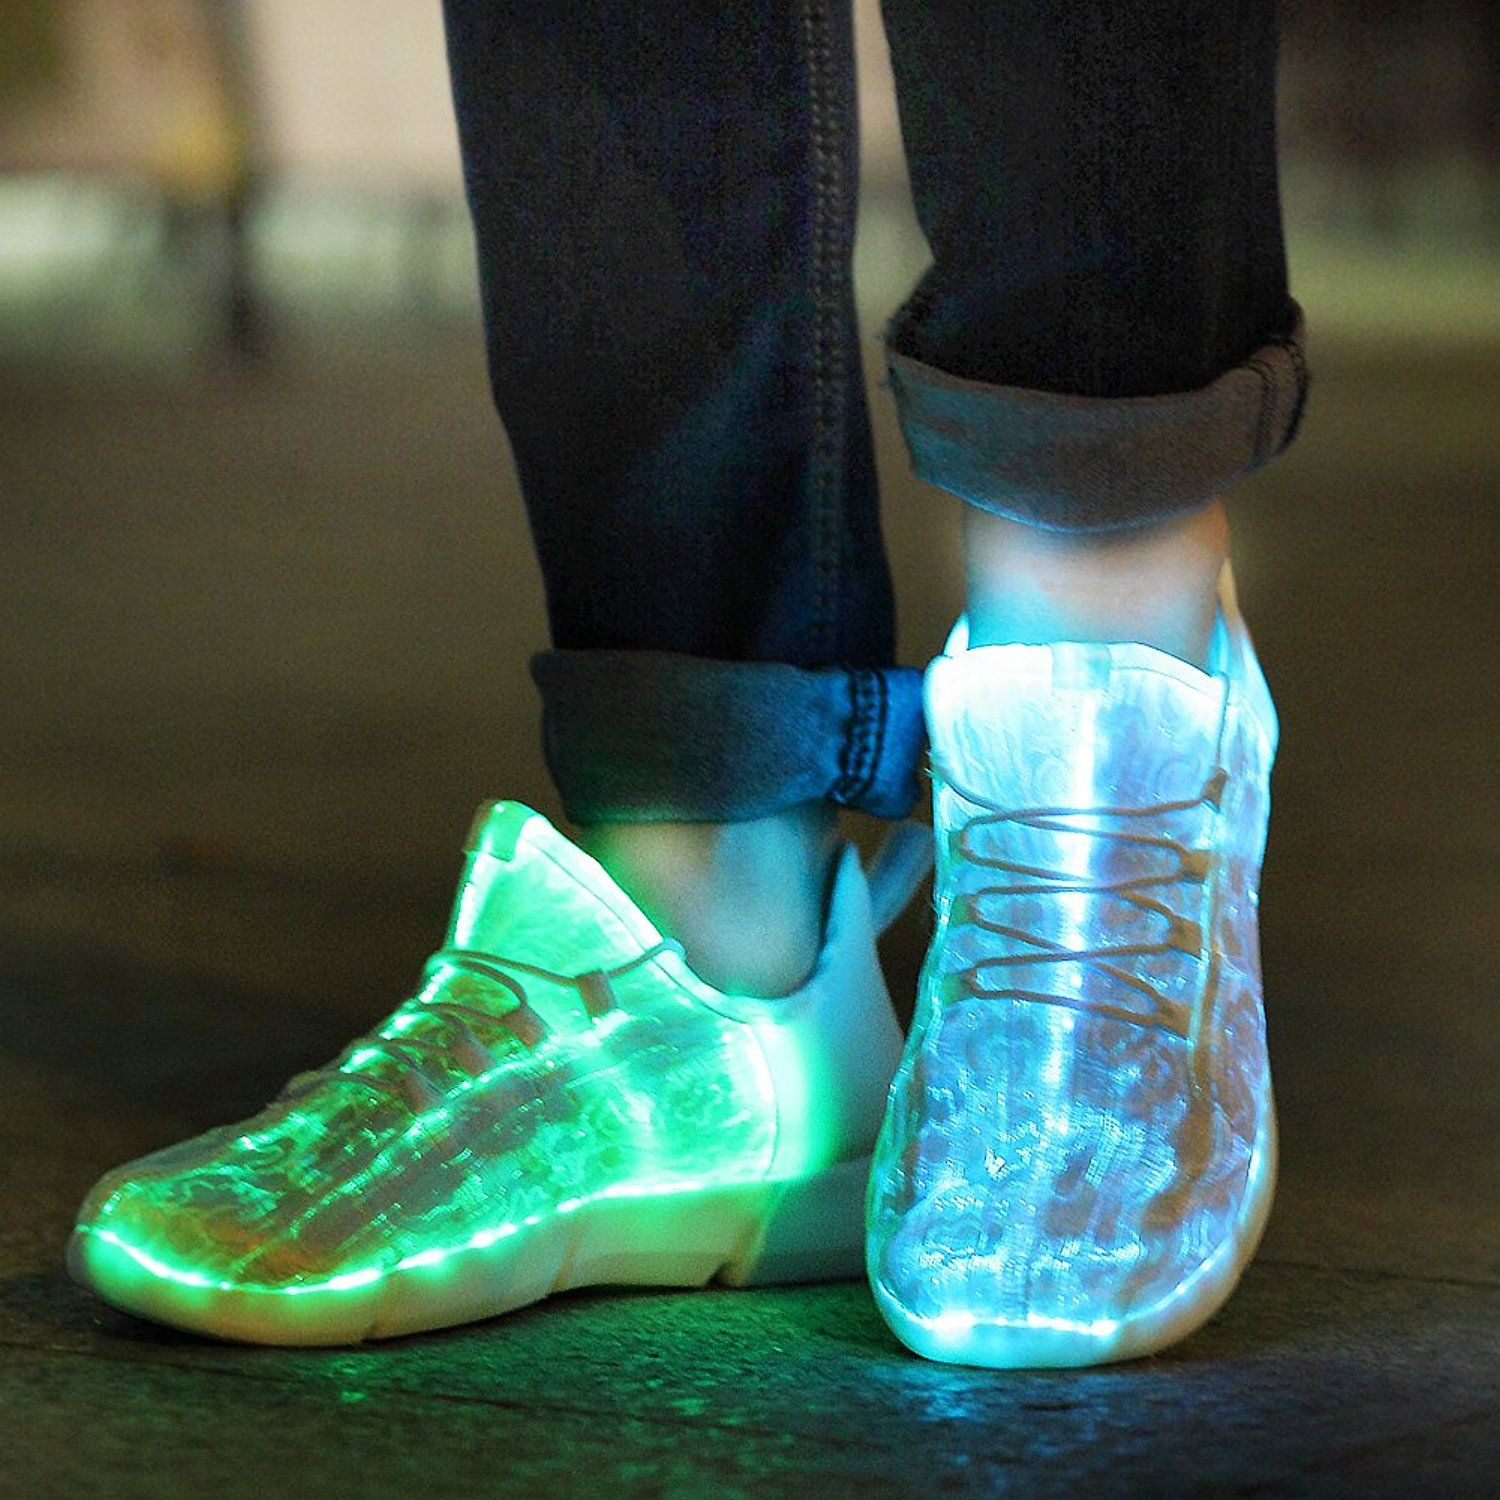 KRIATIV Luminous Sneakers Glowing Light Up Shoes for <font><b>Kids</b></font> White LED Sneakers Children Flashing Shoes with Light for Adult&<font><b>Kid</b></font>